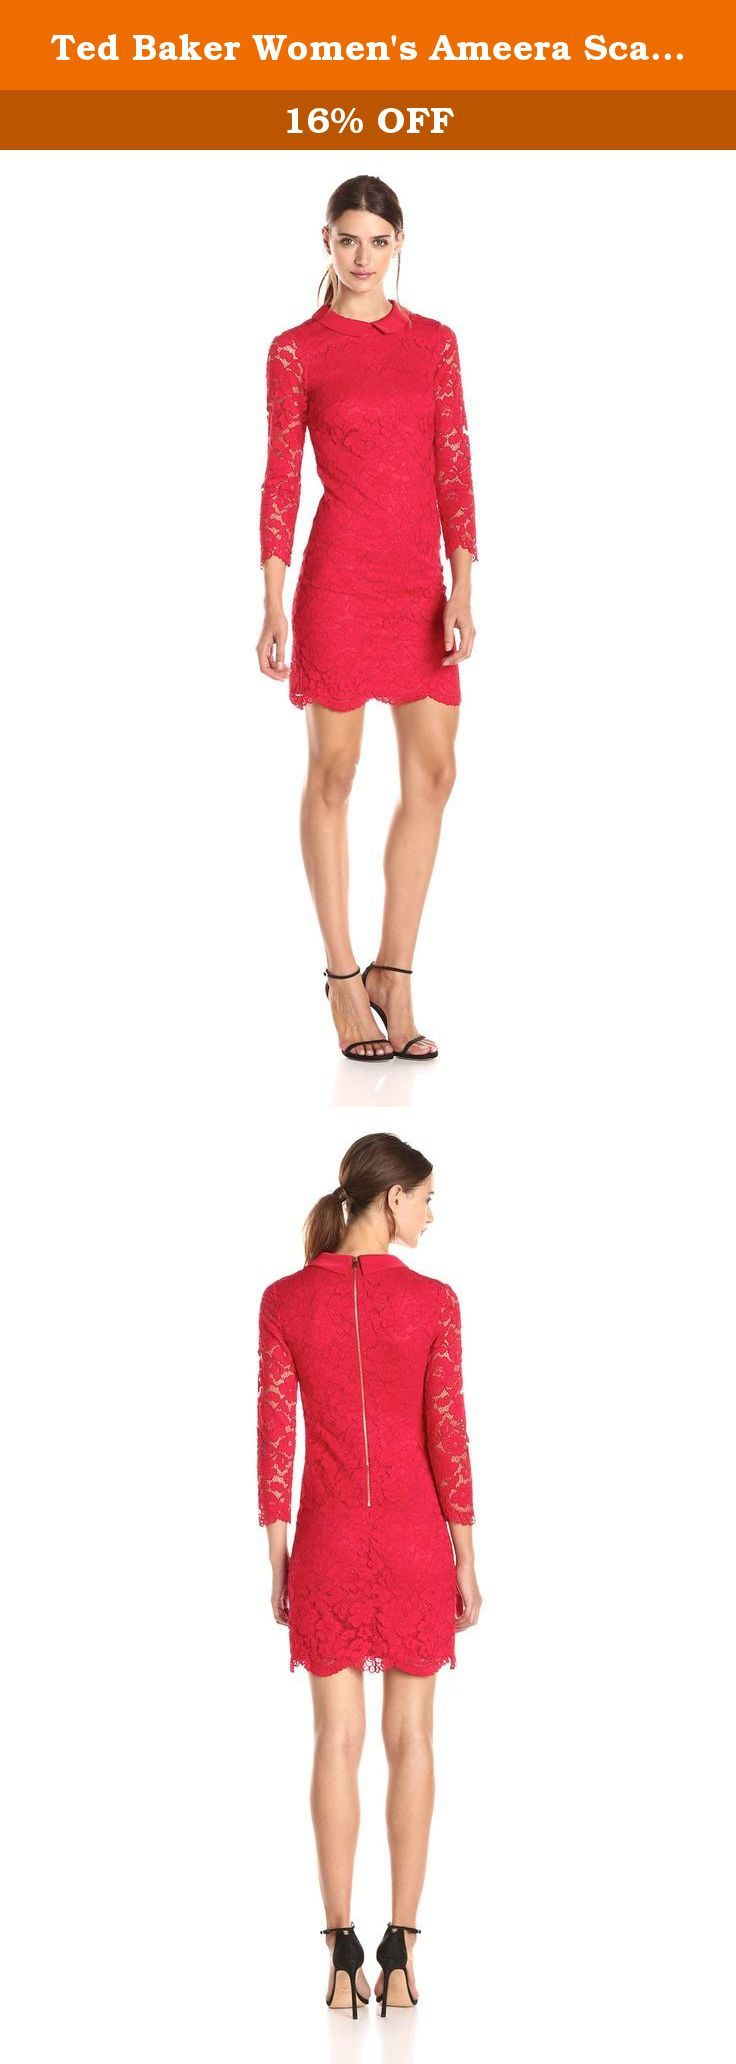 Ted Baker Women's Ameera Scallop Hem Lace Long Sleeve Dress, Mid Red, 4. Ameera scalloped hem lace dress. Three-quarter length lace sleeves. Contrast plain collar. Exposed metallic zip at back.